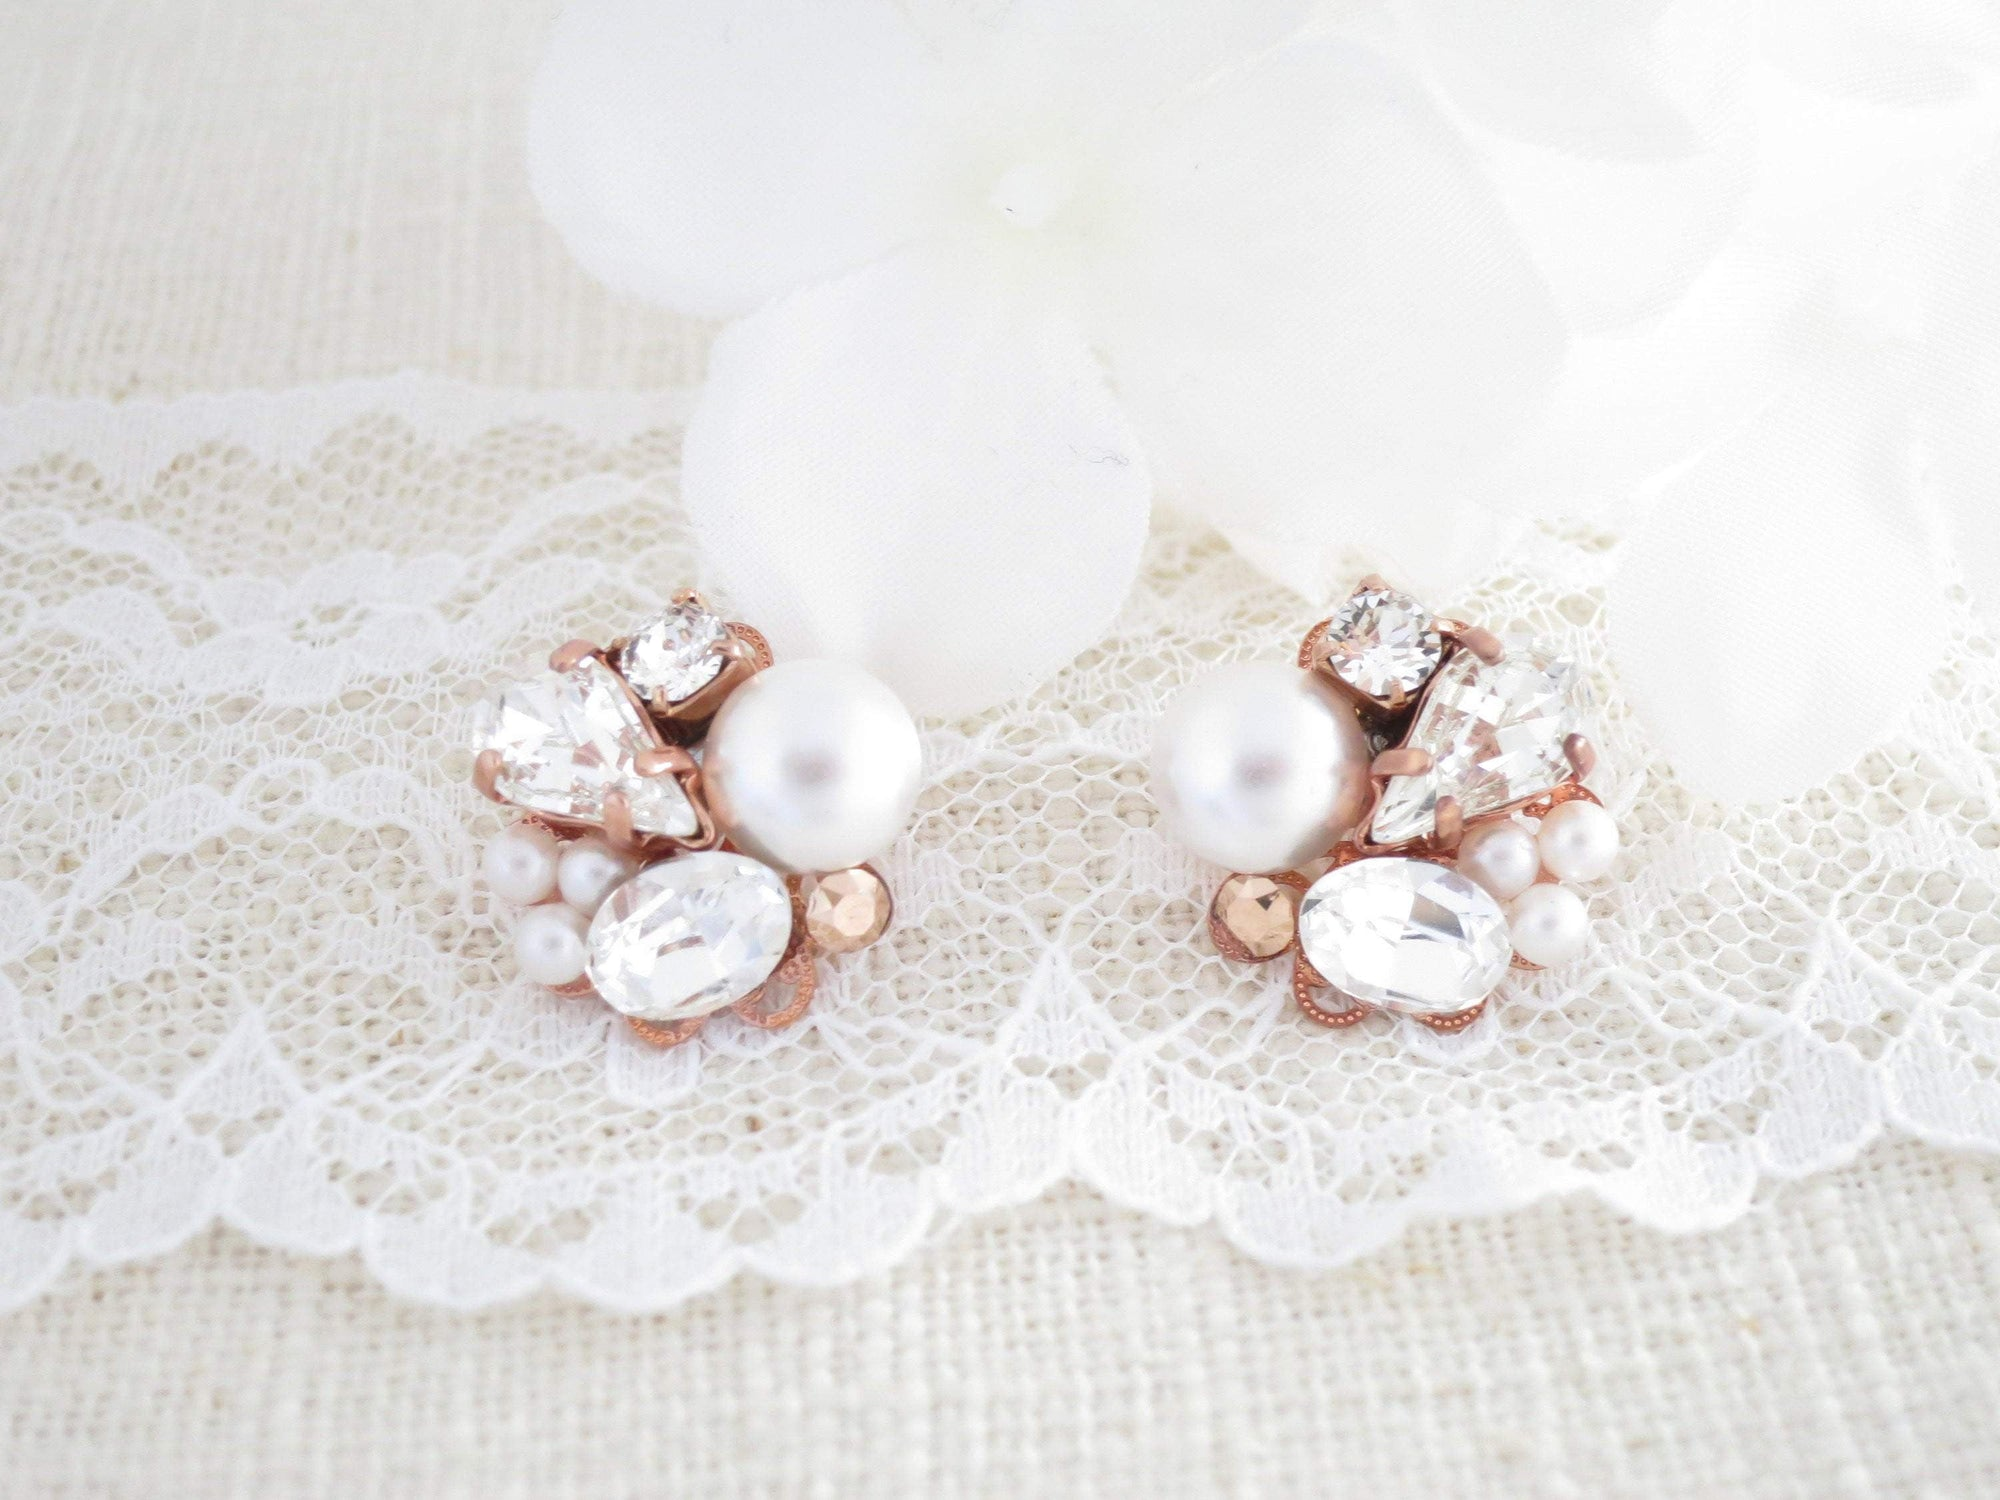 DIEDRA:  Rose Gold Asymmetrical Studs - BlingBaddaBoom - Minimalist, Vintage, Modern Wedding and Bridal Jewelry